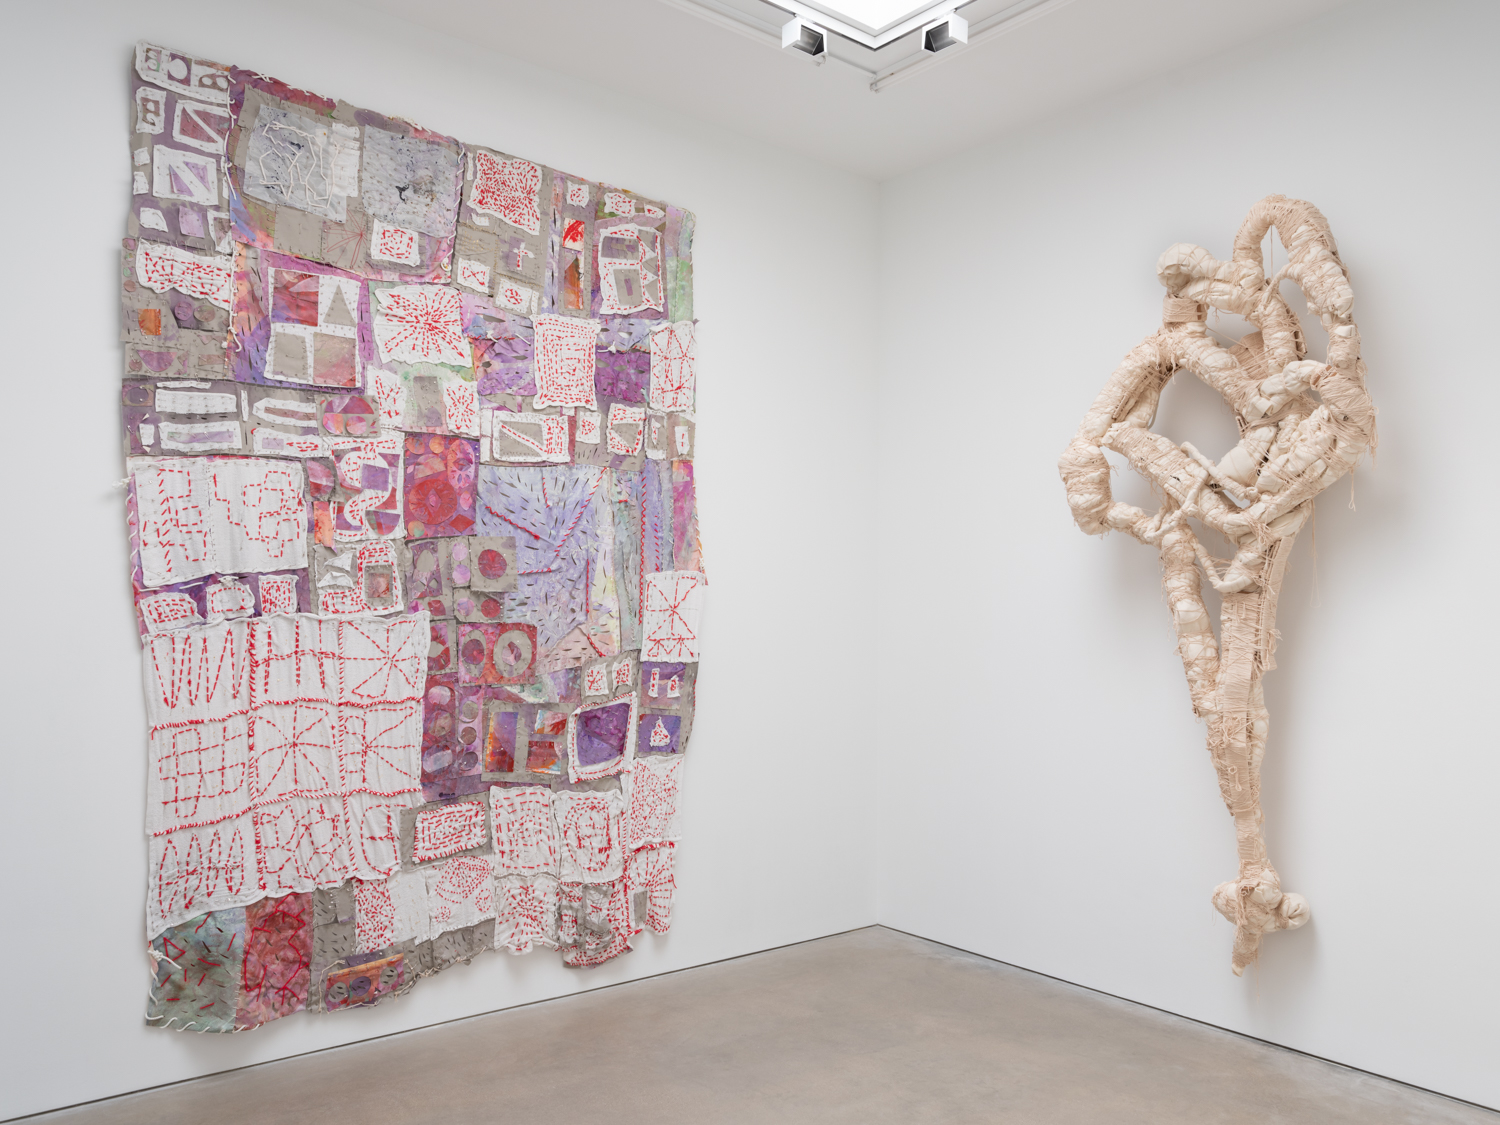 William J. O'Brien transitional objects Installation view Shane Campbell Gallery